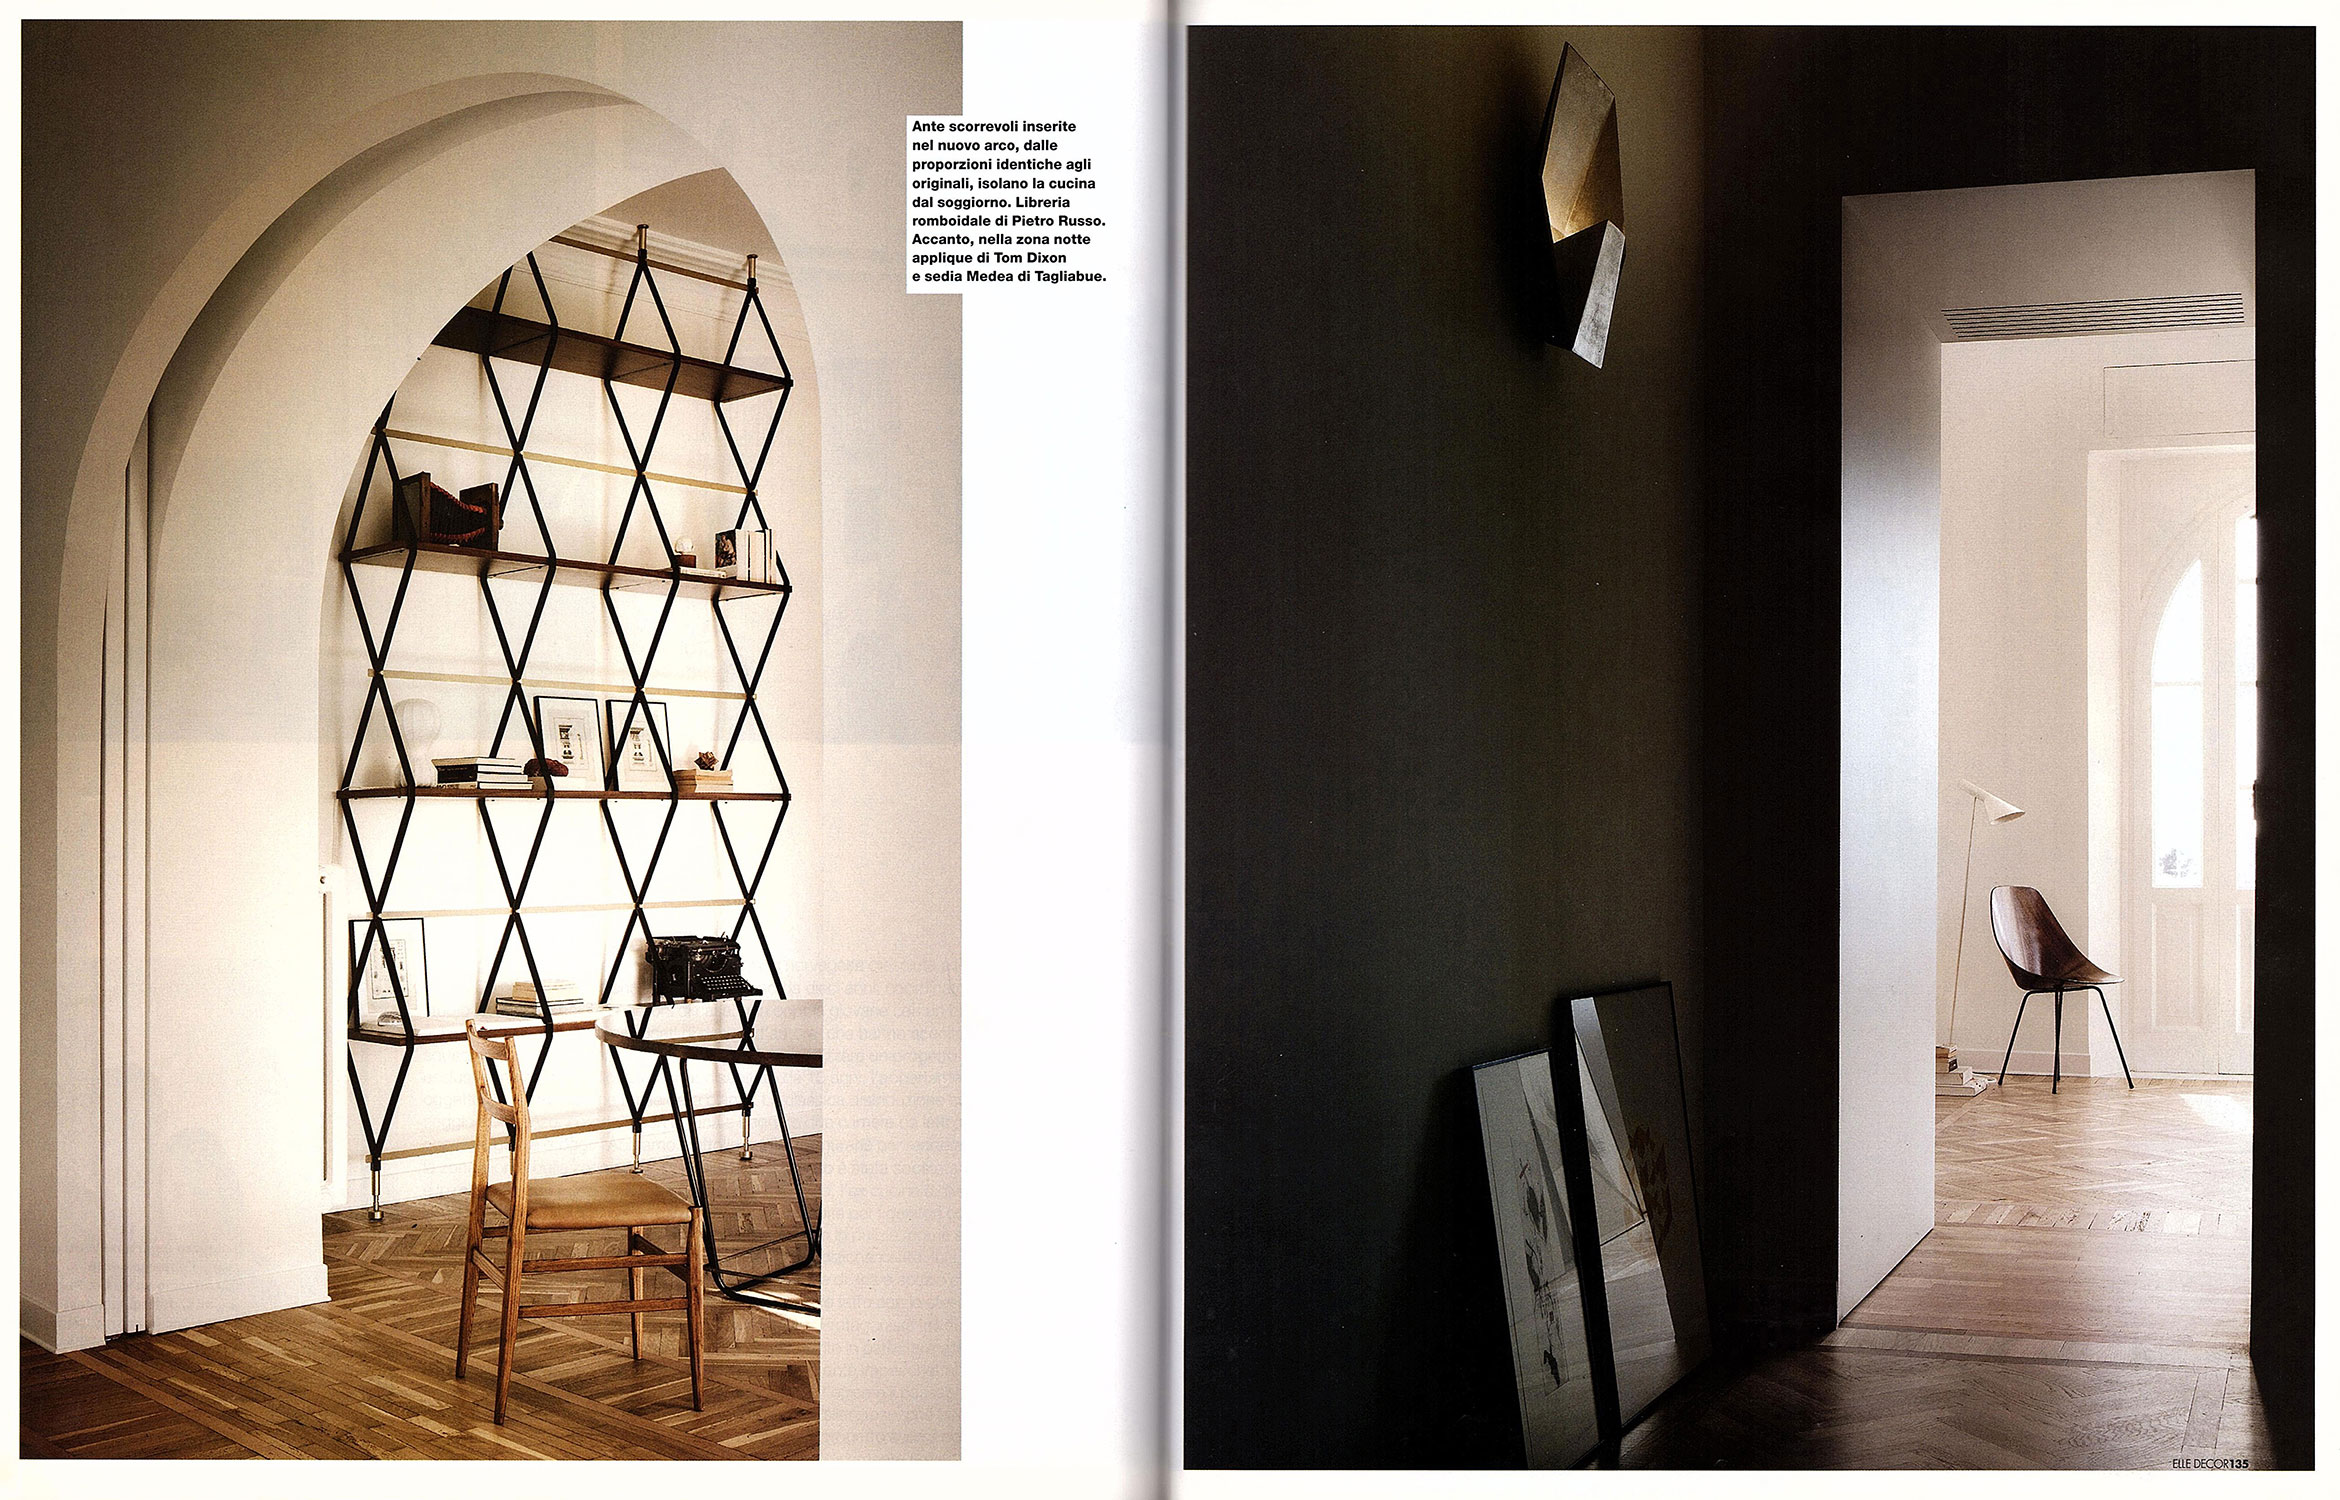 Elle Decor Italia | Quincoces-Dragò & Partners